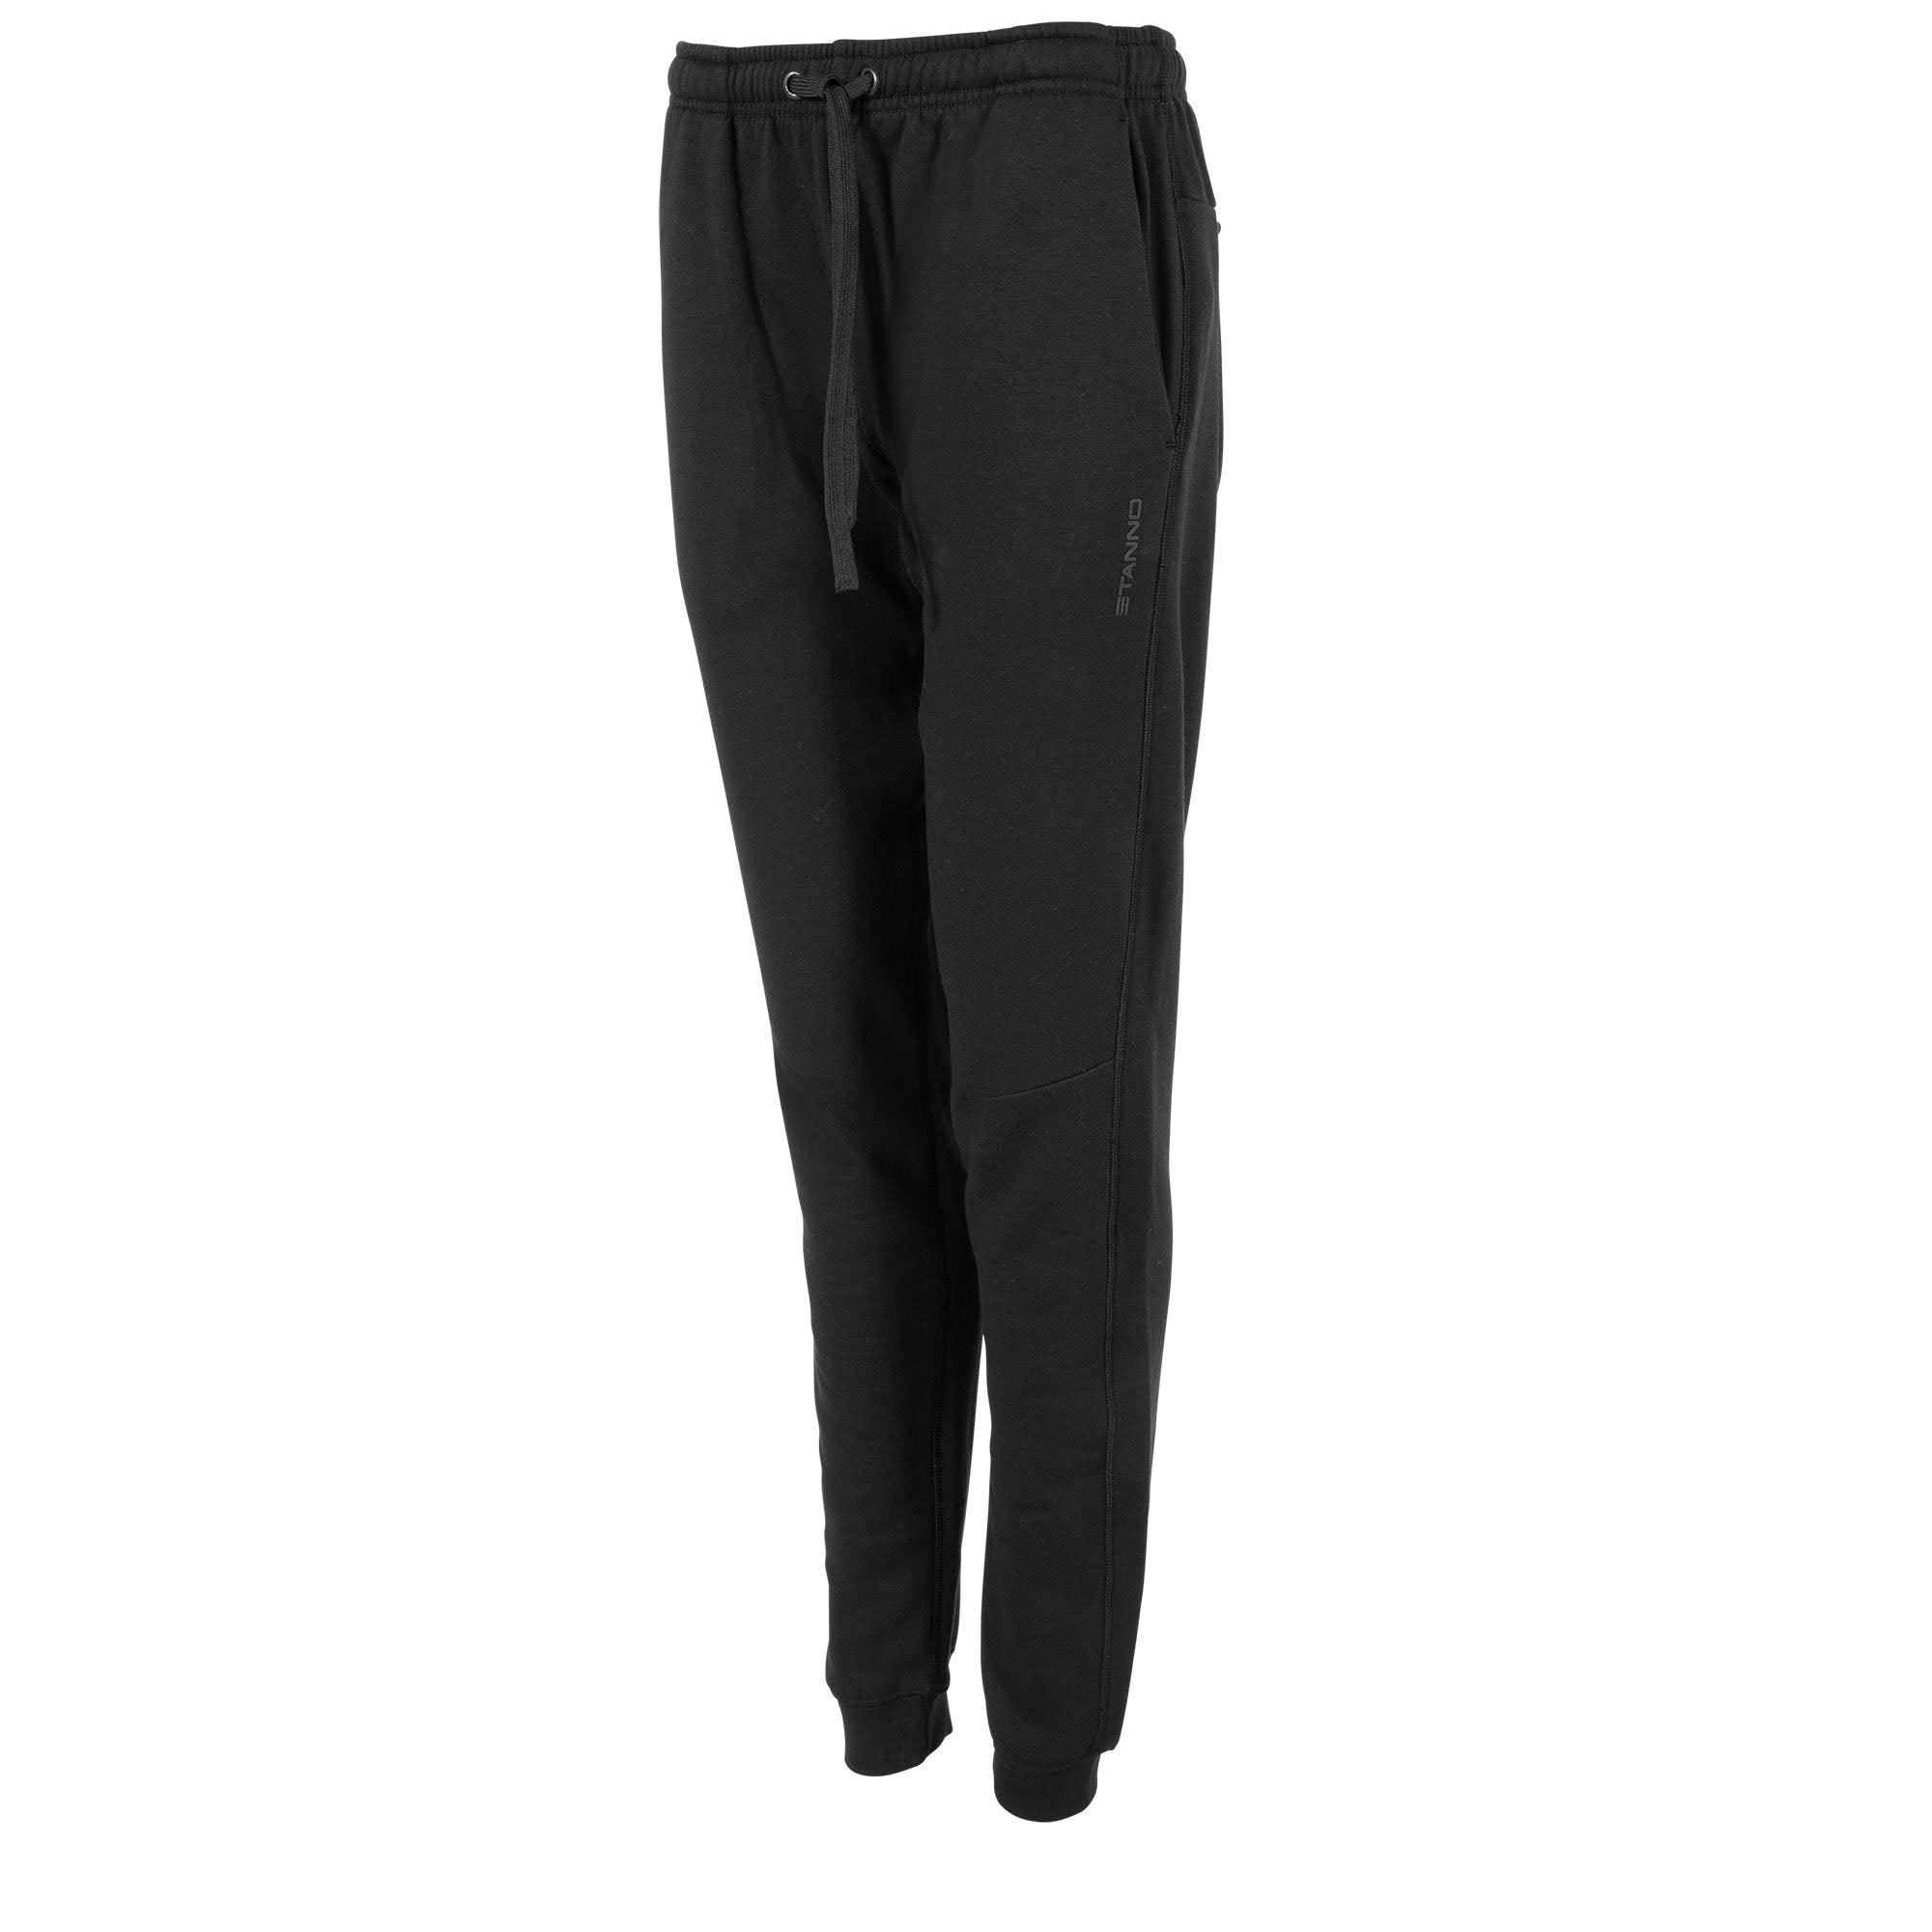 Front view of black Stanno Ease Sweat Pants ladies with 2 side pockets and drawstring cord on waistband.